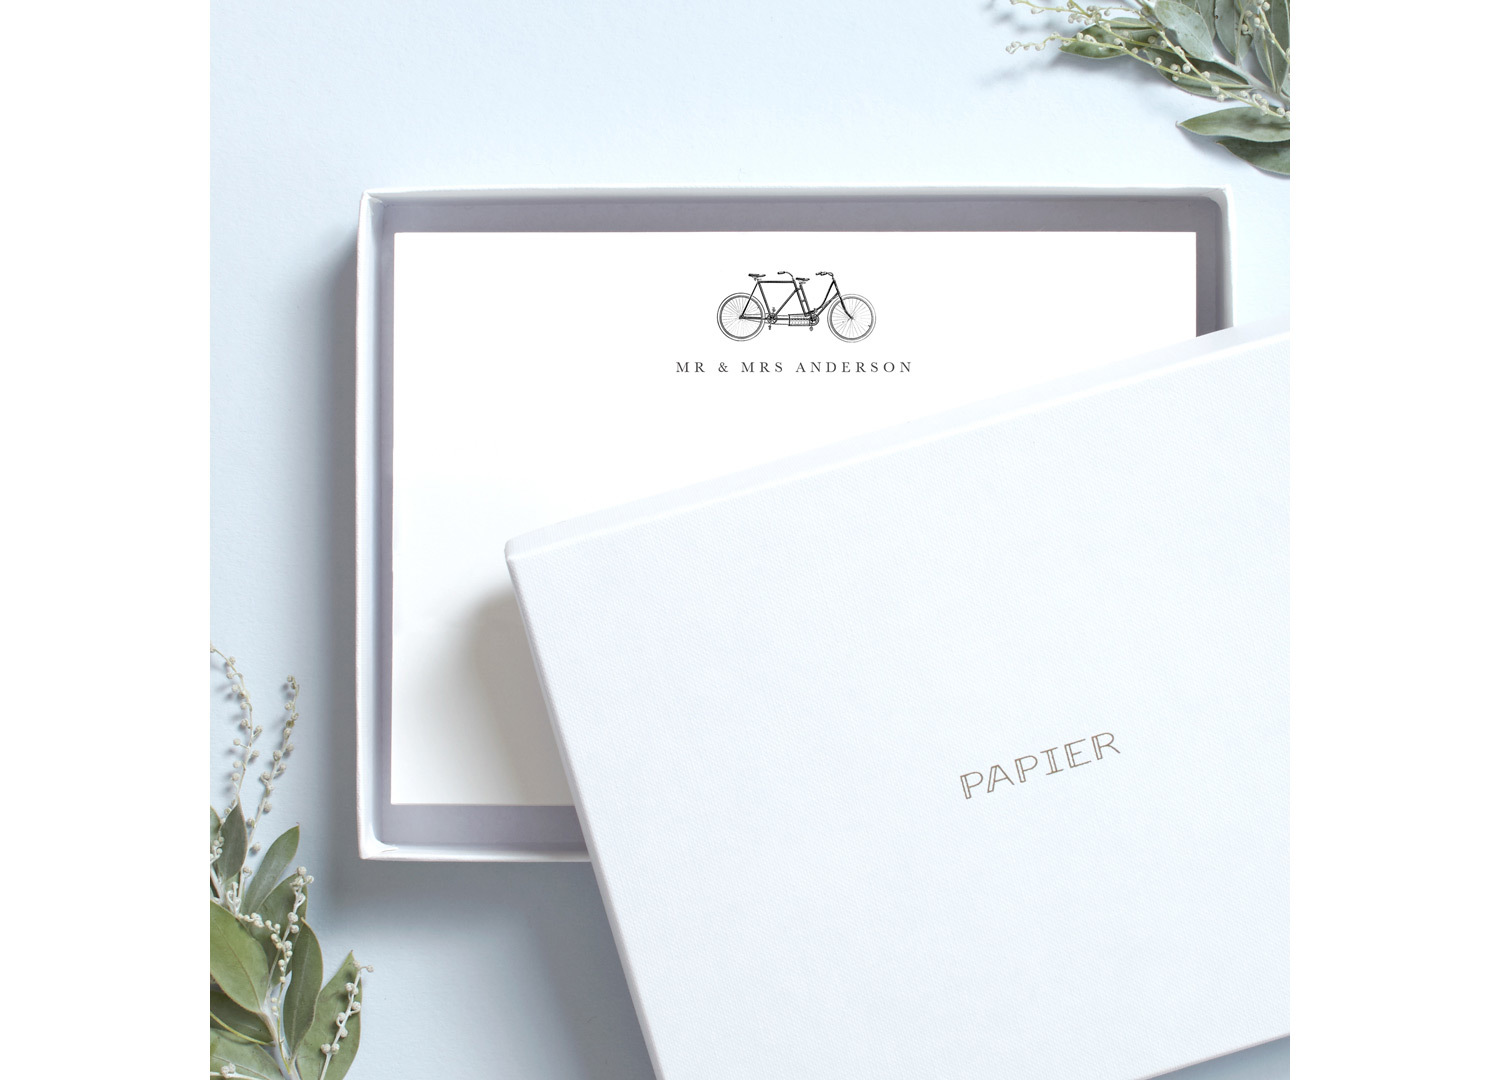 1st Wedding Anniversary Paper Gift Ideas The Fold Papier